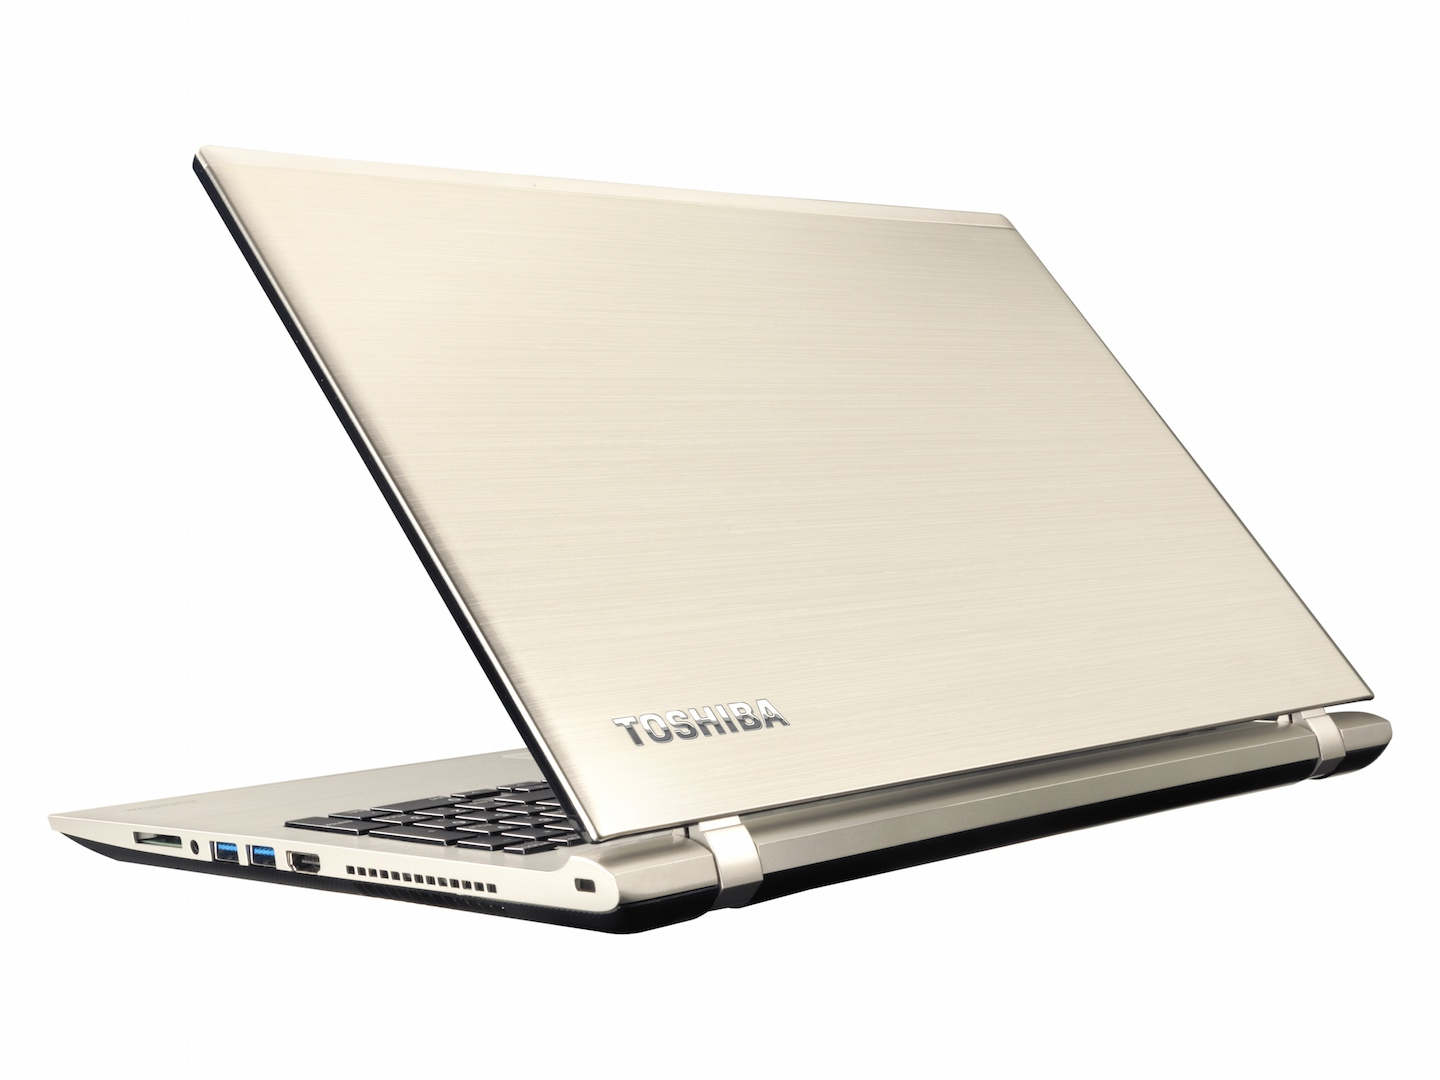 toshiba satellite p50 c 10g notebook review reviews. Black Bedroom Furniture Sets. Home Design Ideas